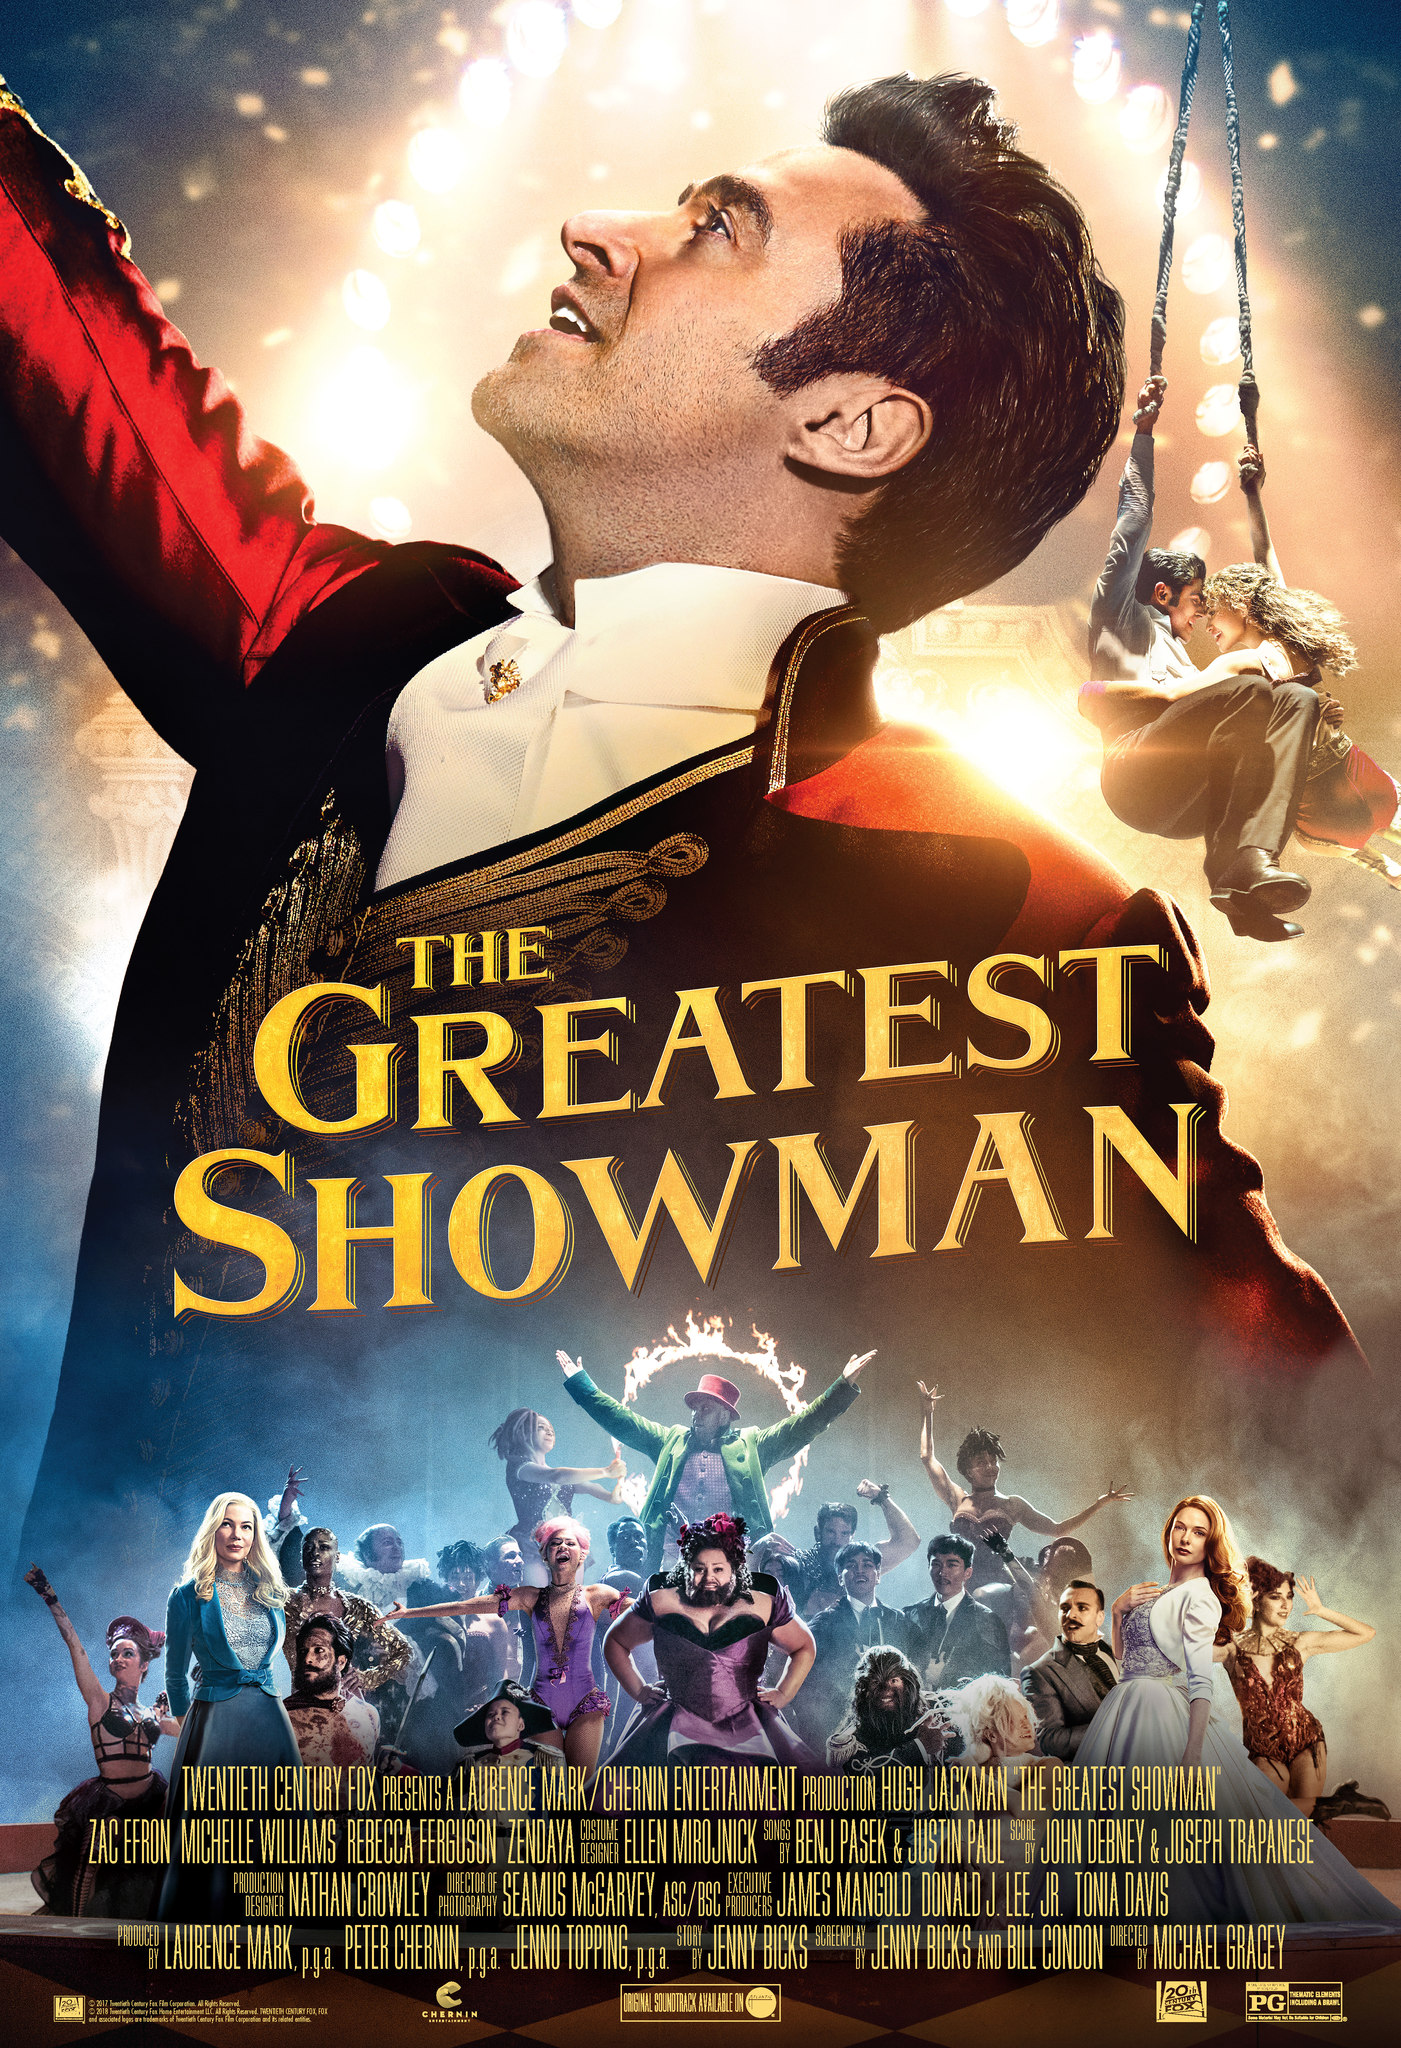 The Greatest Showman 2017 Imdb